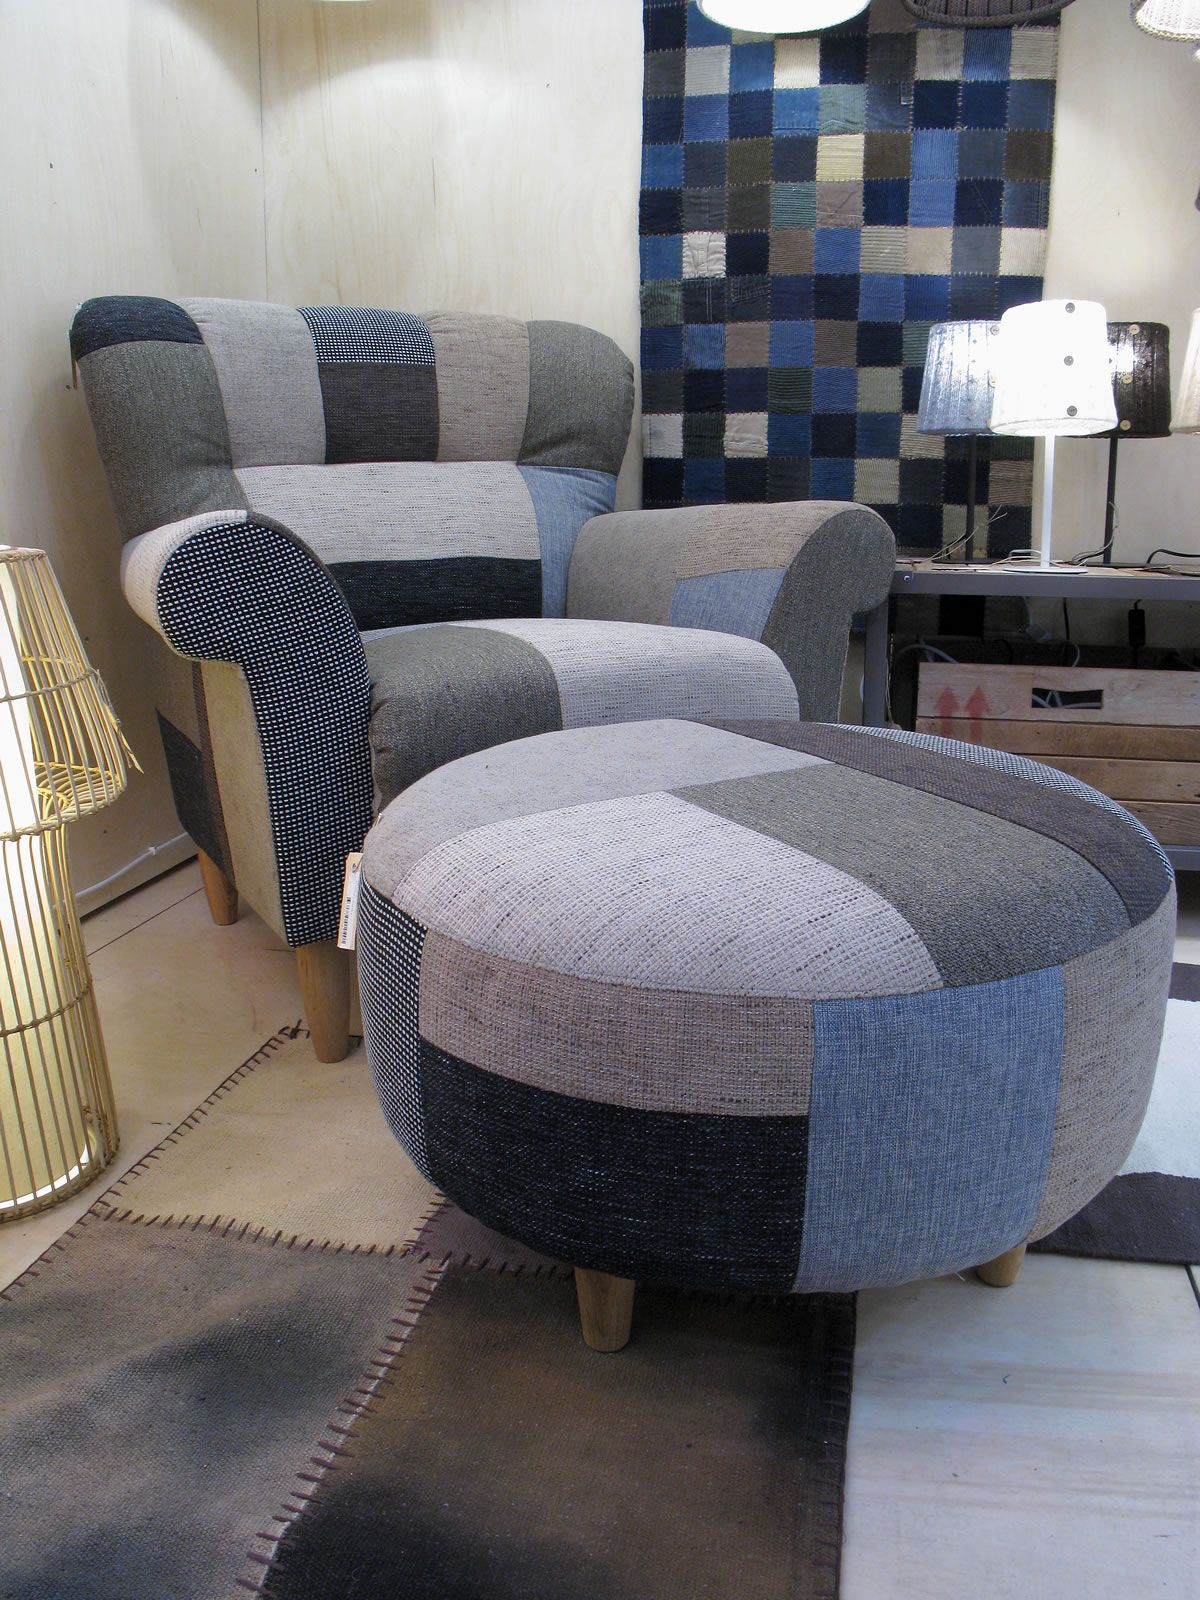 Like this alot Have the denim need the chair and ottoman